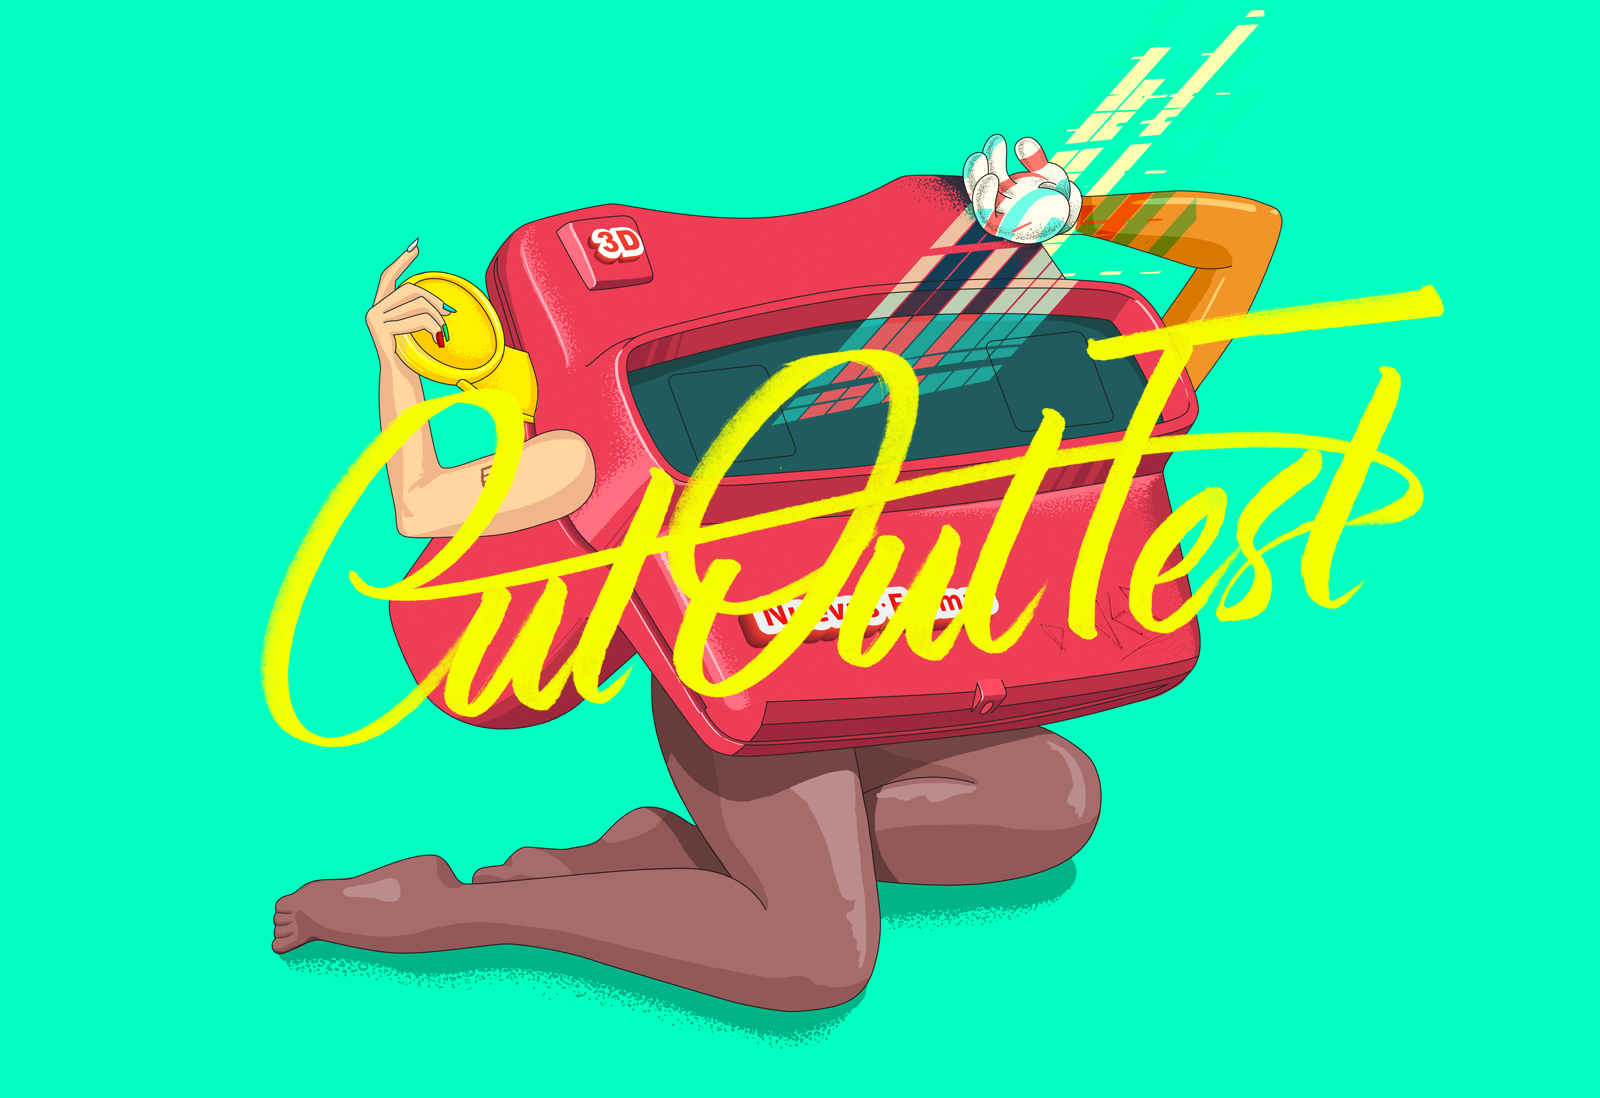 AL_Website_CutOutFest_02.png